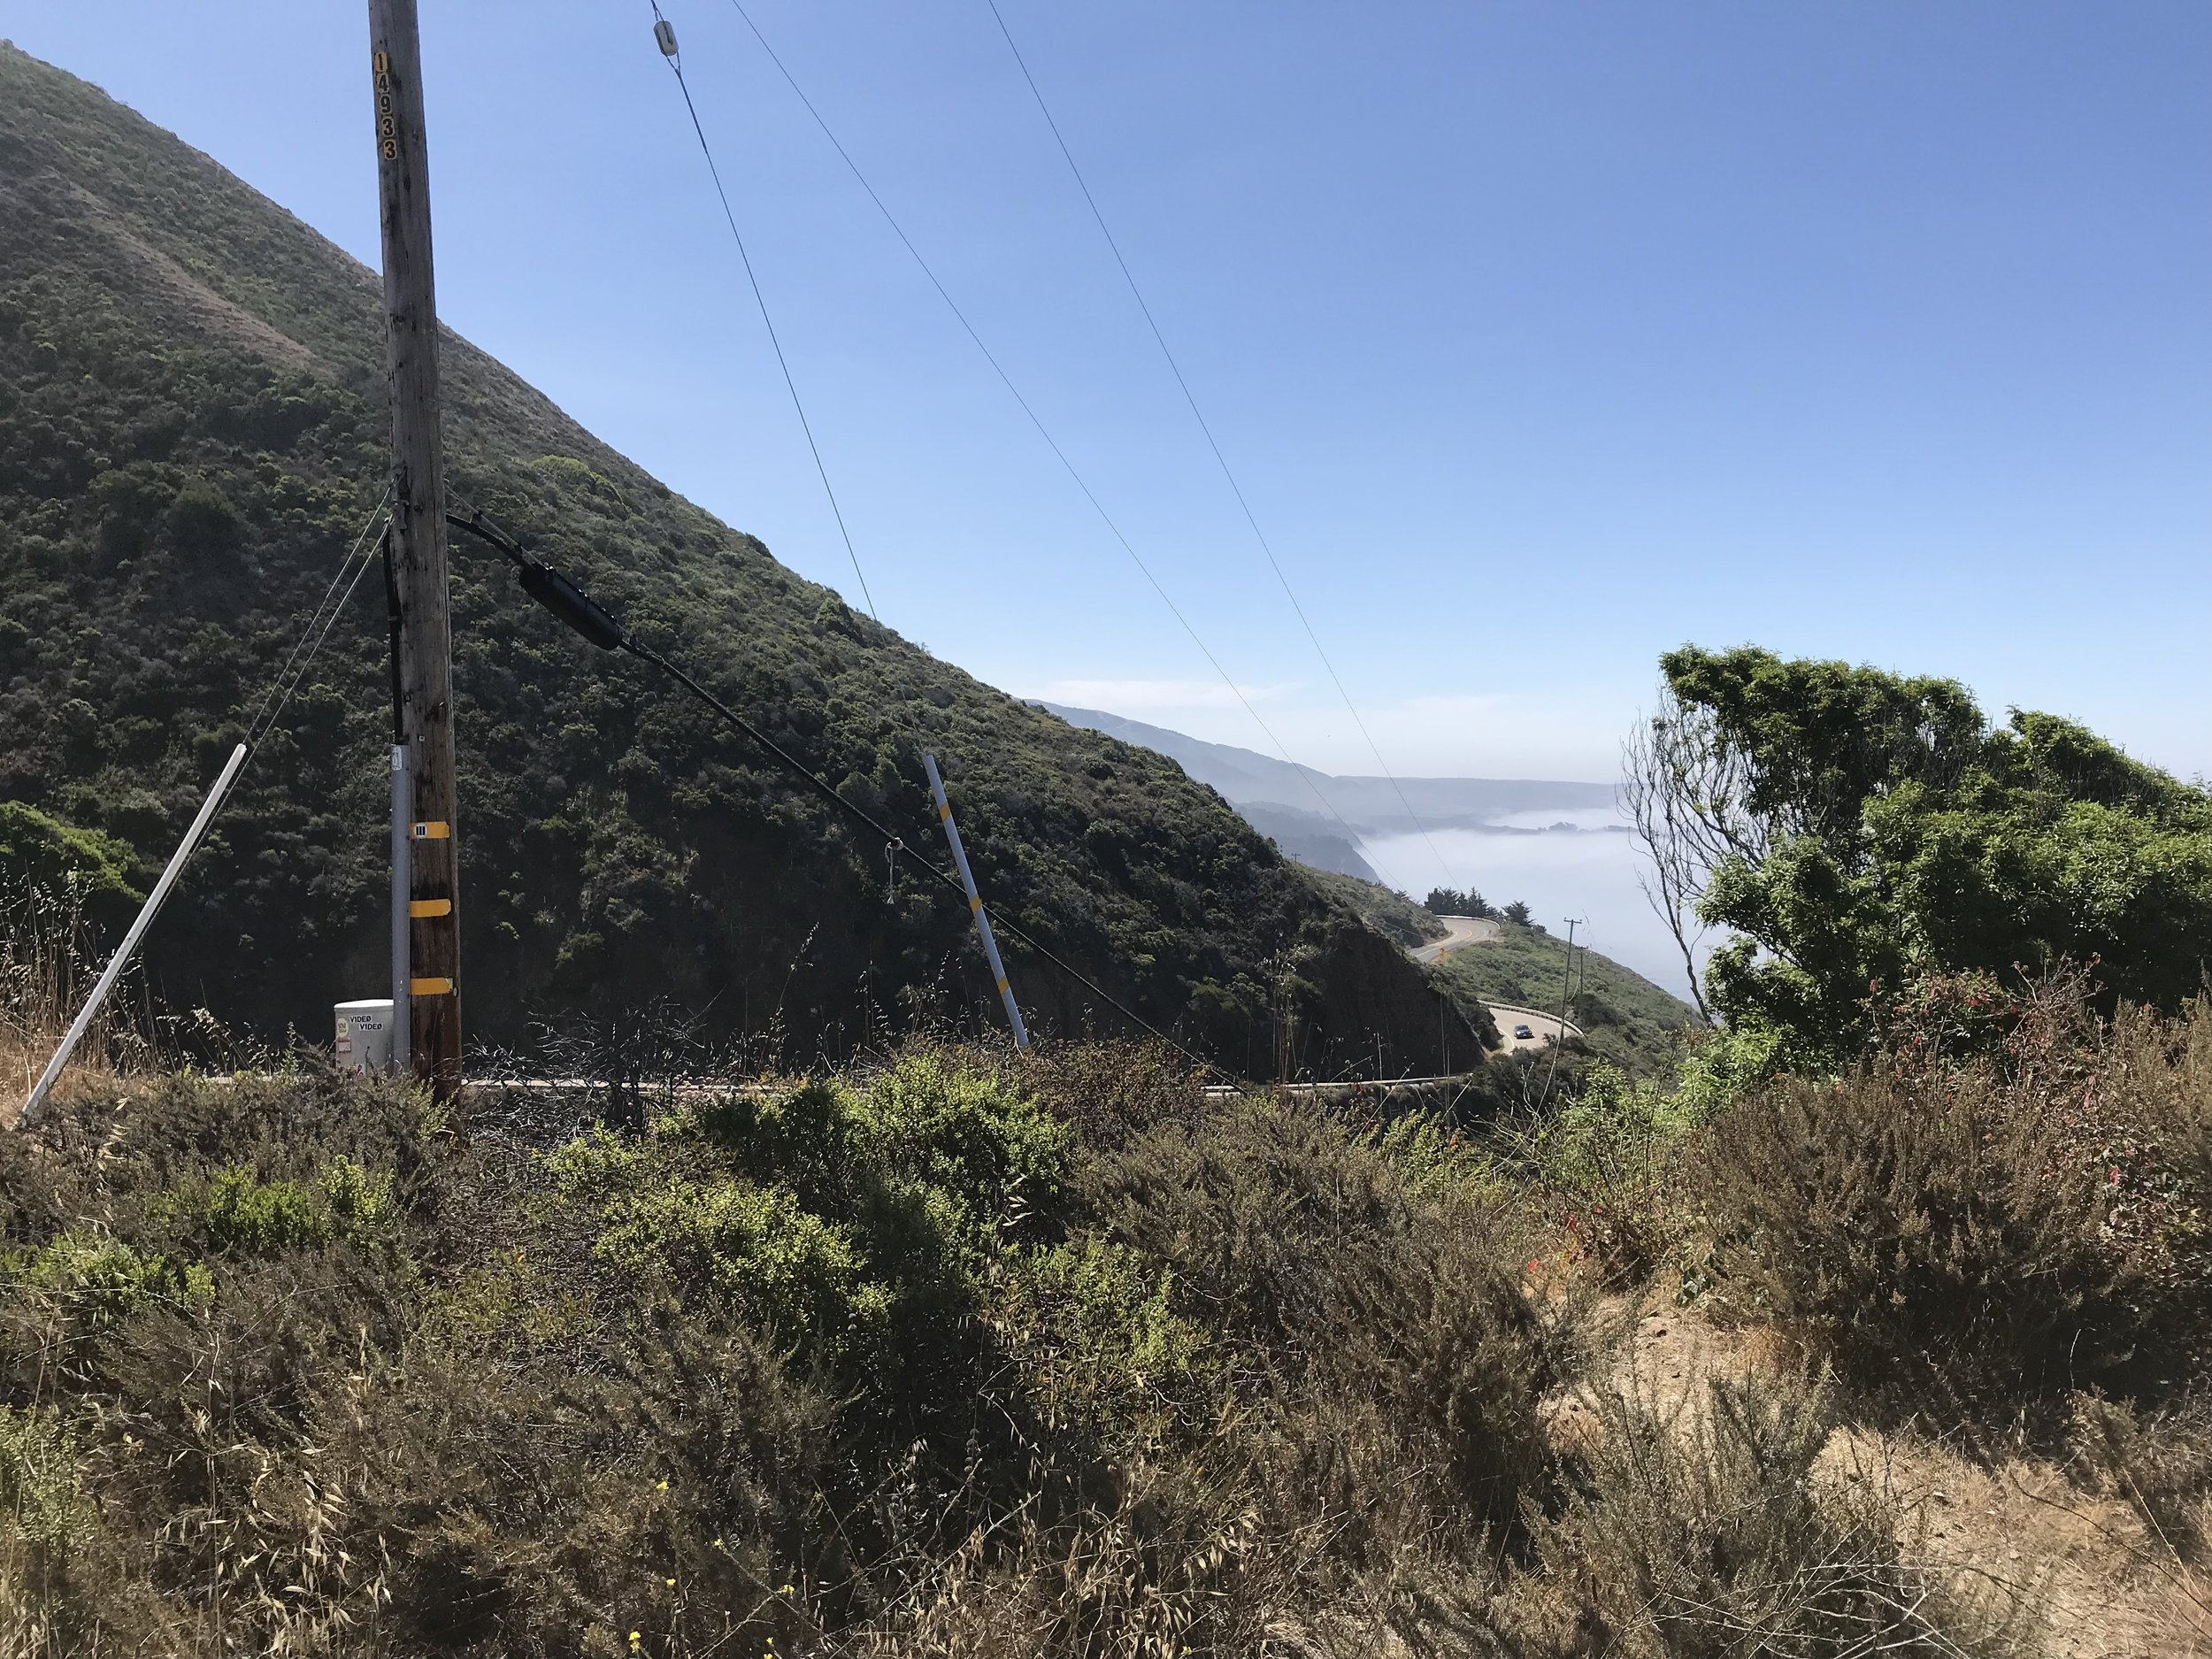 Thursday we rode to Morro Bay, which included plenty more mountain switchbacks.